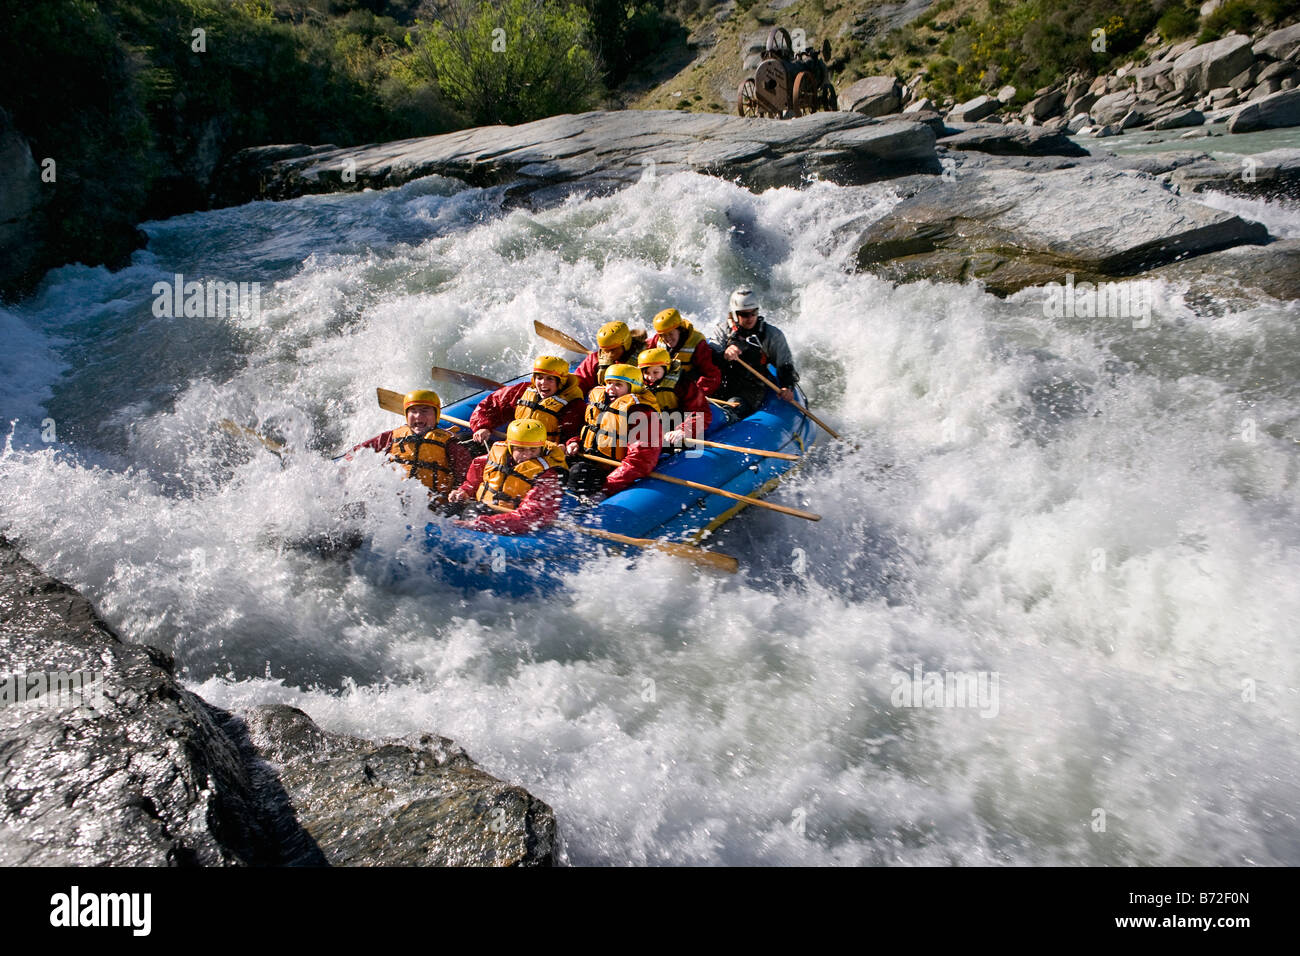 new zealand south island queenstown white water rafting. Black Bedroom Furniture Sets. Home Design Ideas